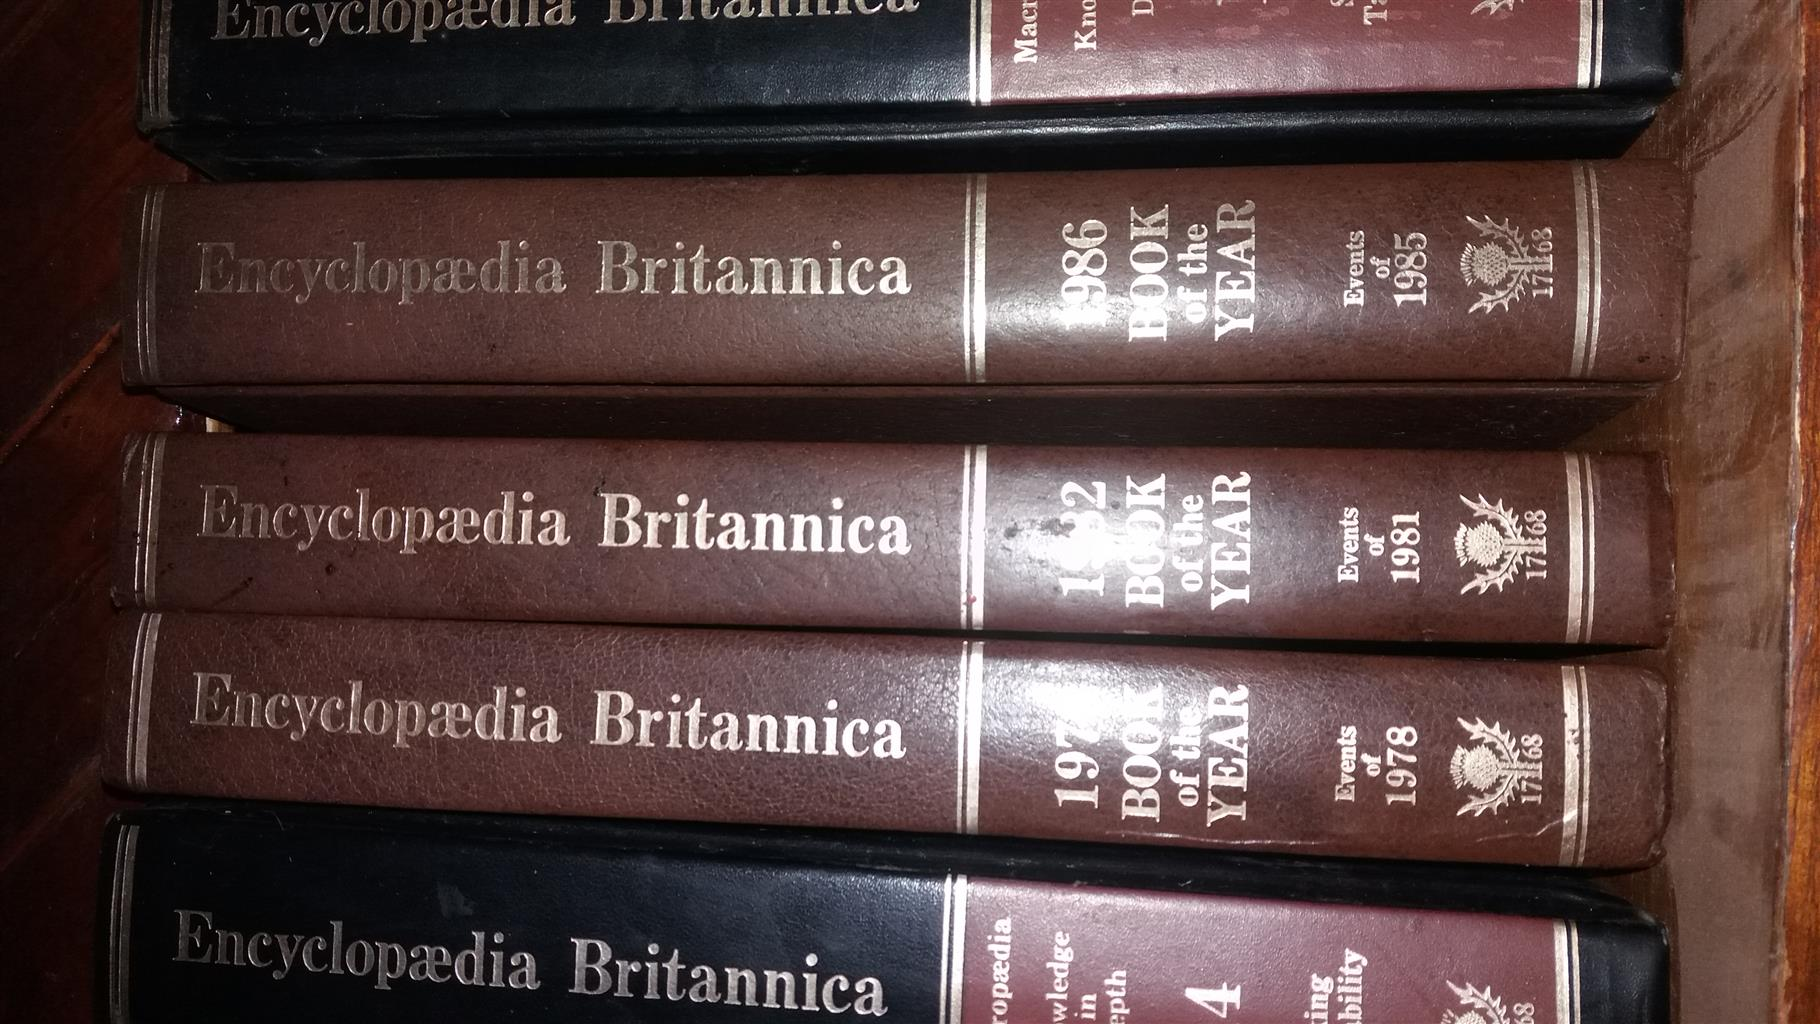 Britannica Encylopedia full set